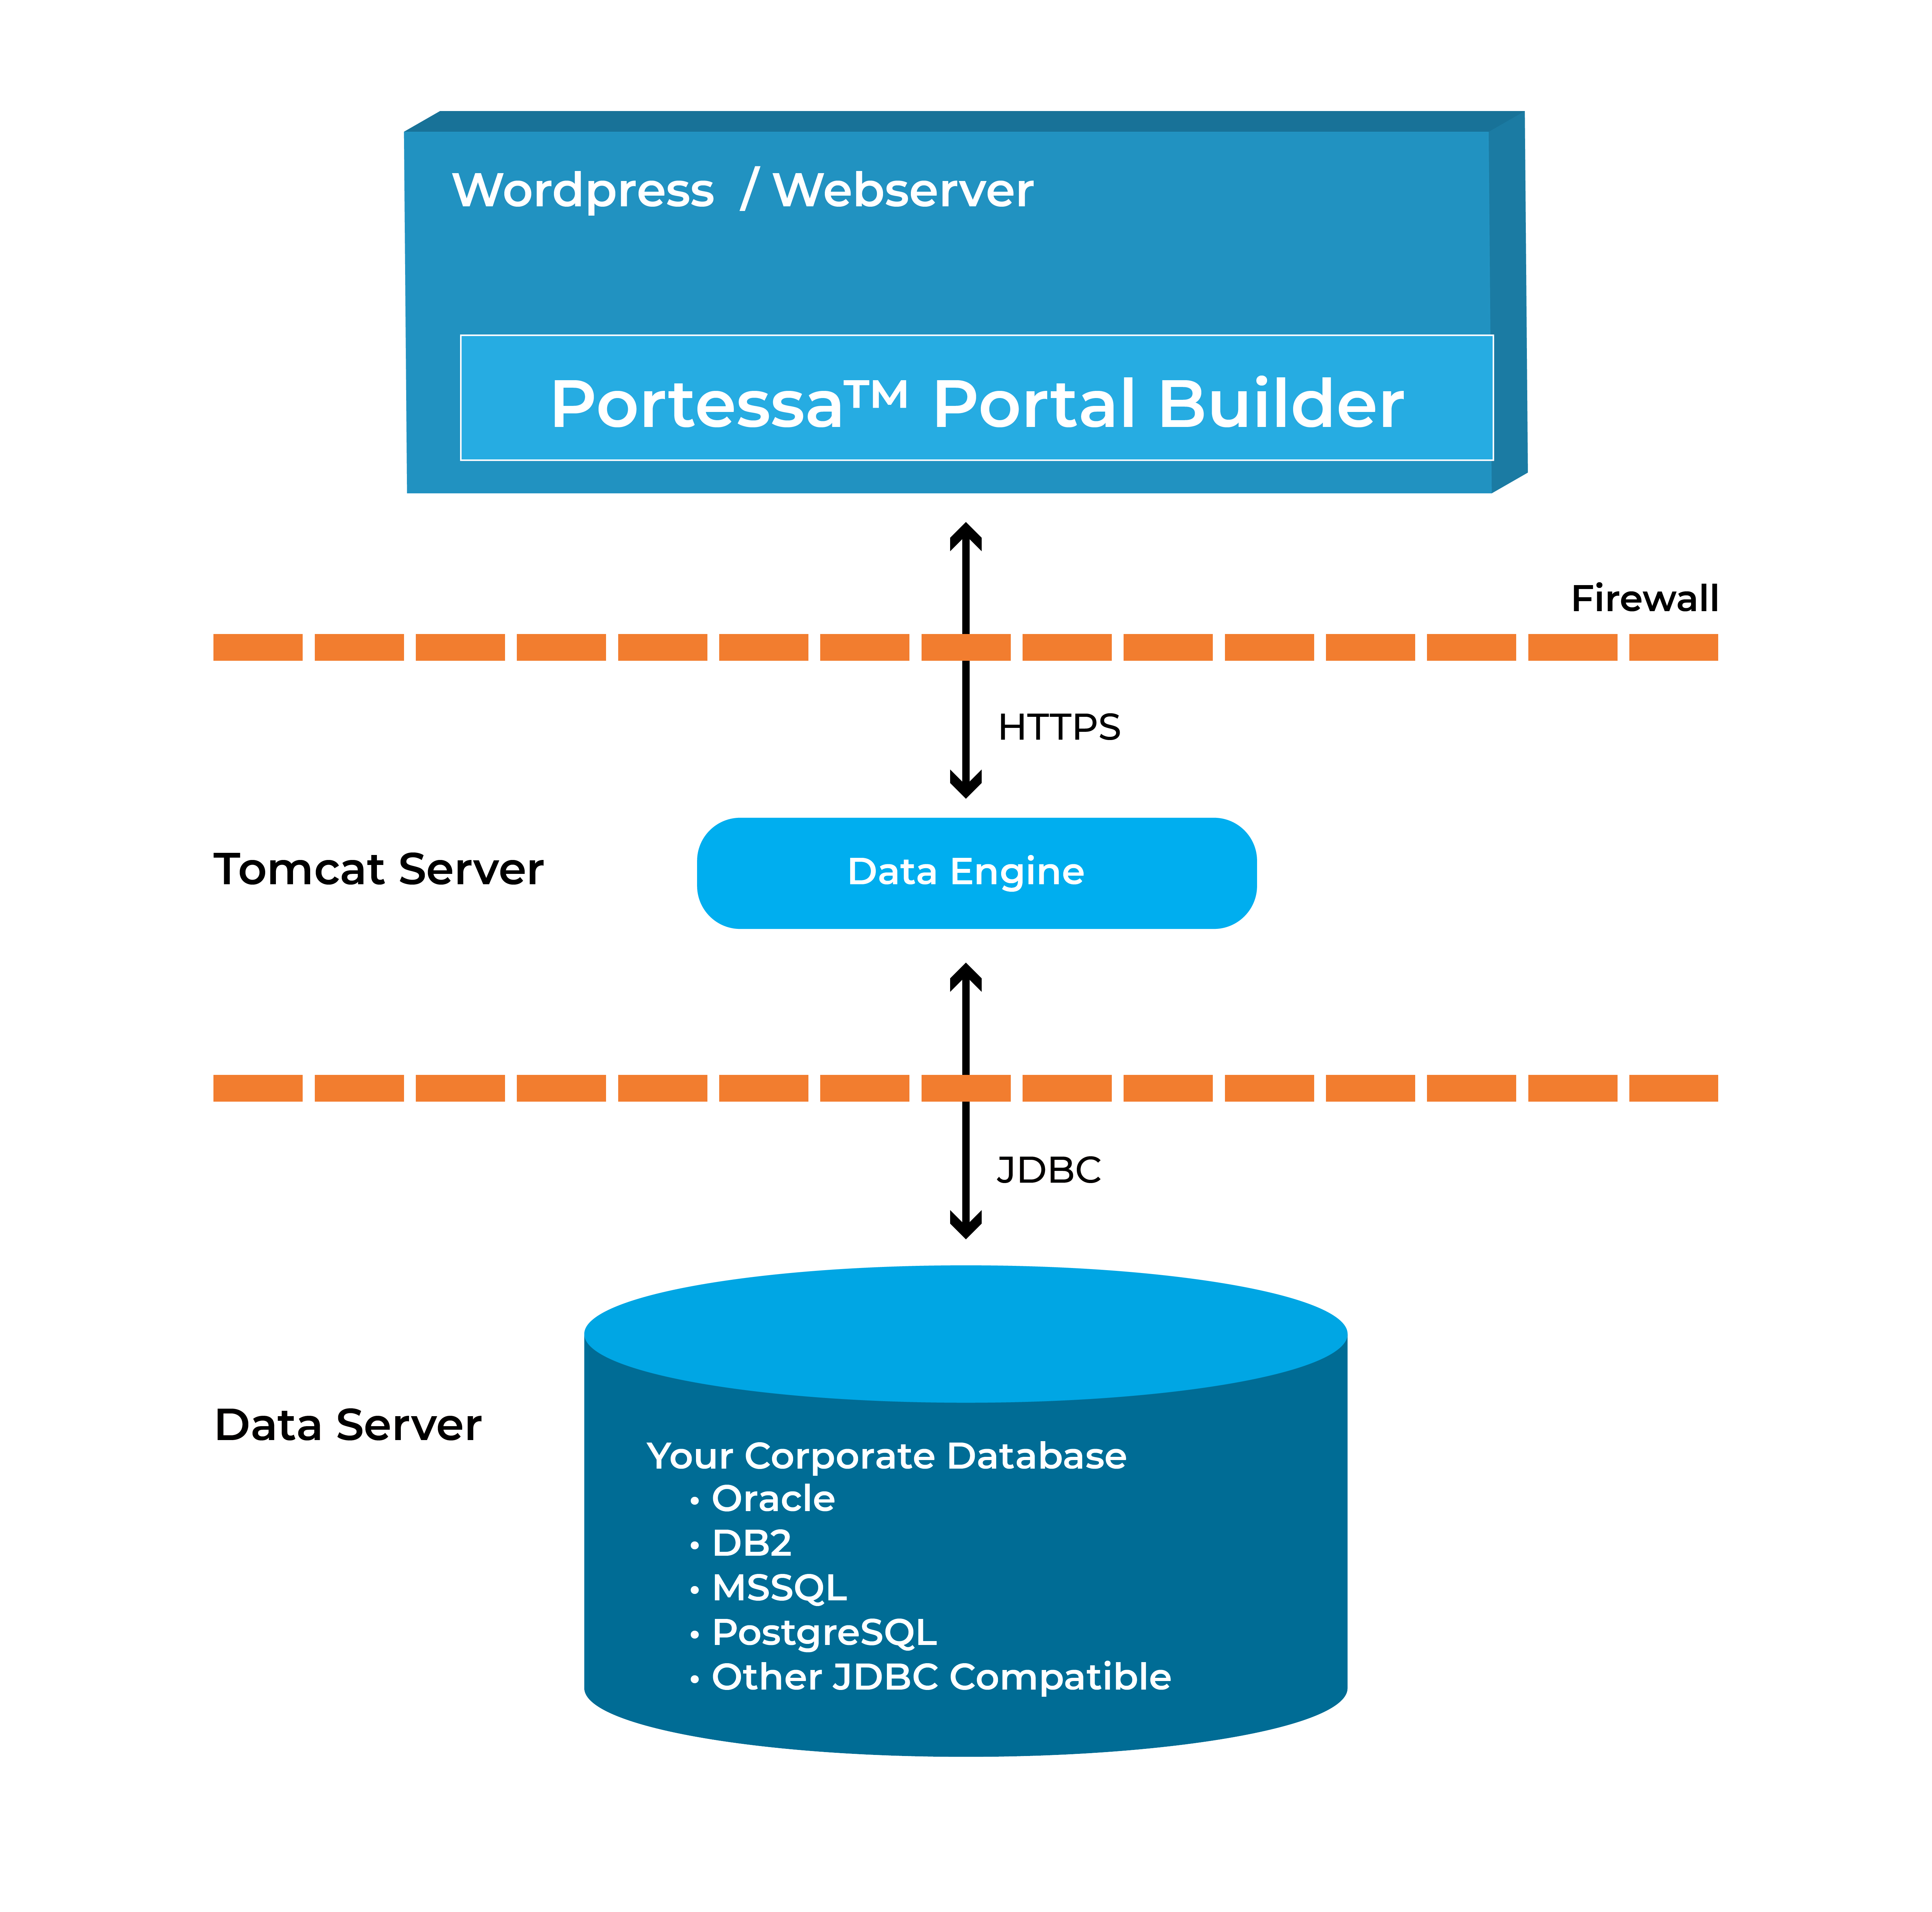 portal-builder-chart-recovered-01-1